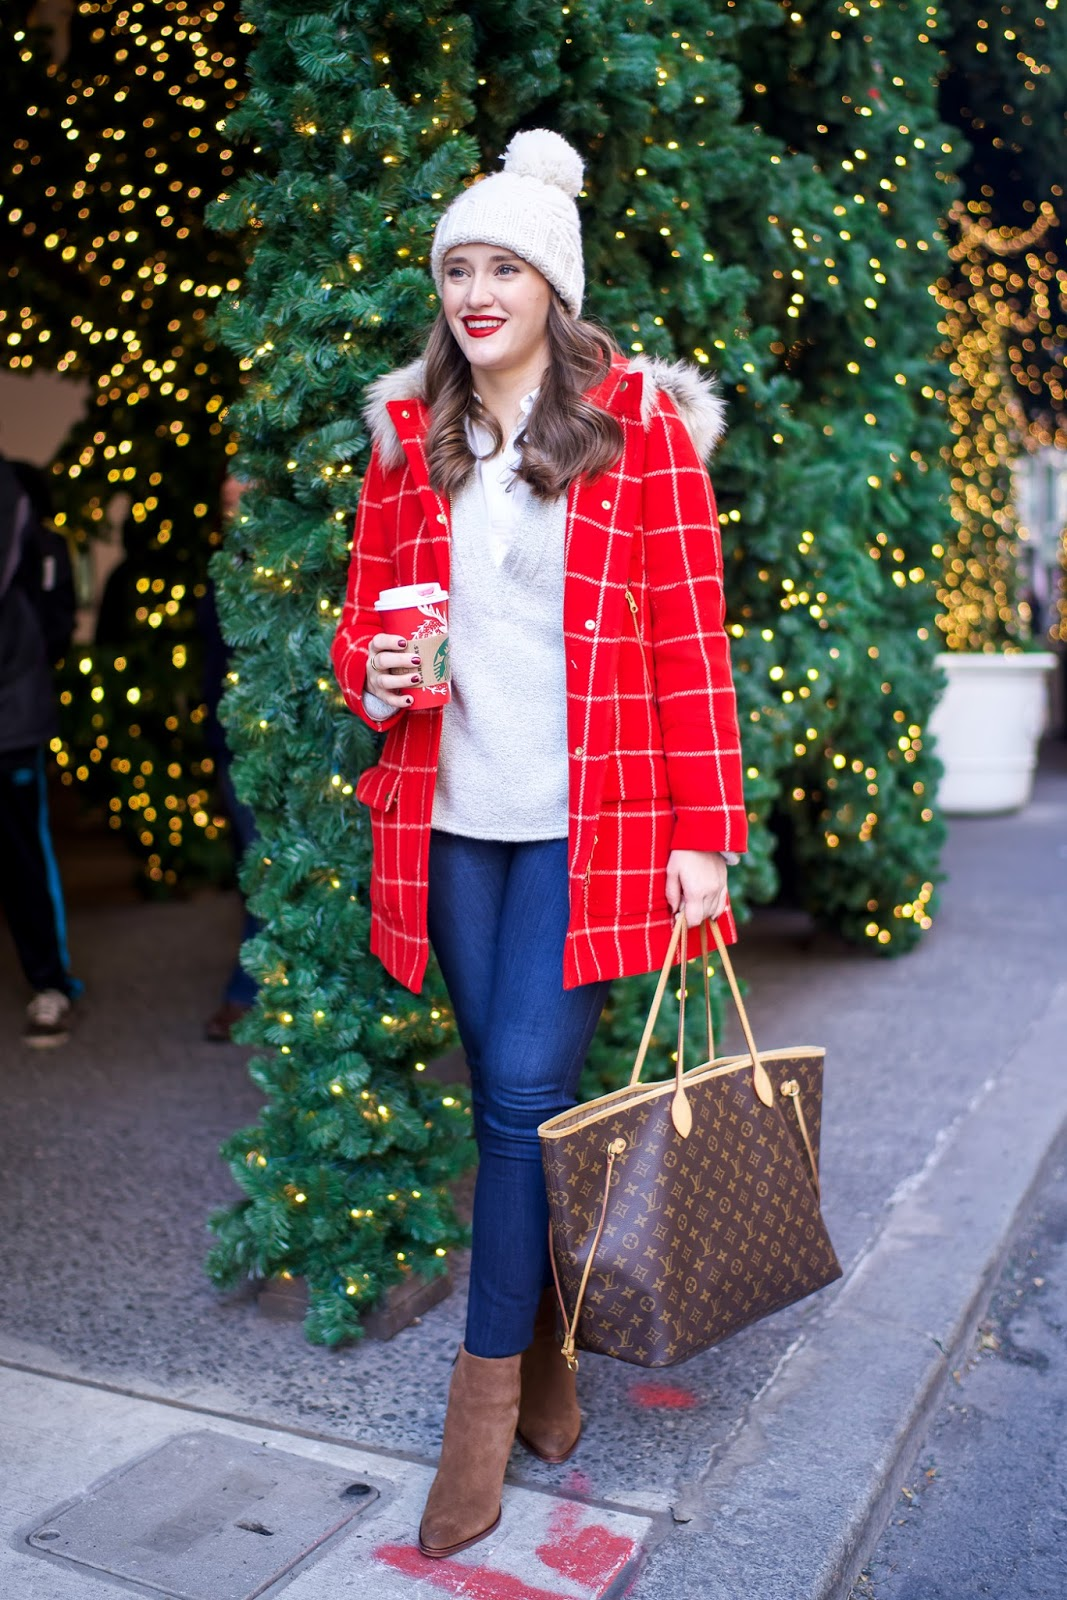 J. Crew Fall/ Winter 2016, Holiday Discount, Cyber Monday, Black Friday Deals